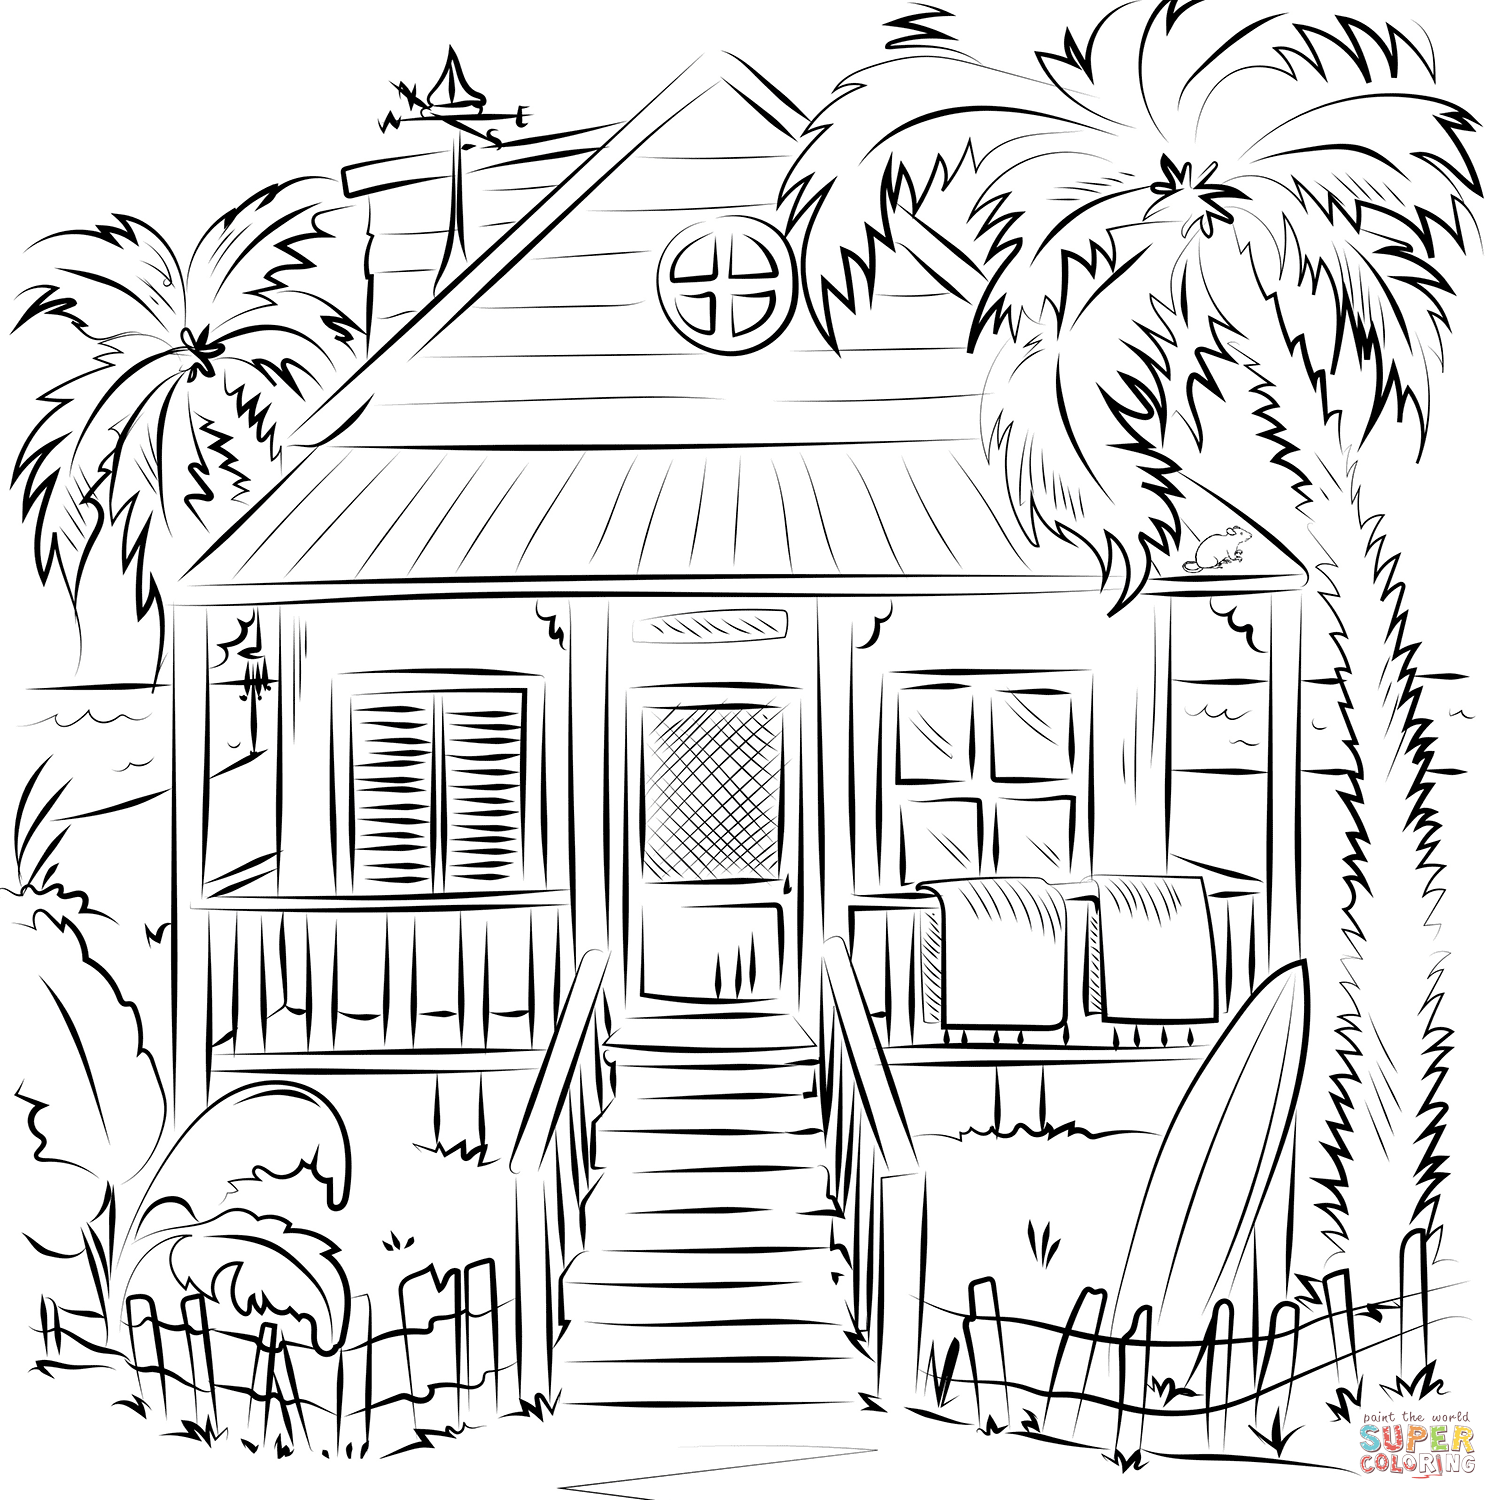 how to draw a big house 10 different ways to draw houses lomond paper co big house draw a how to